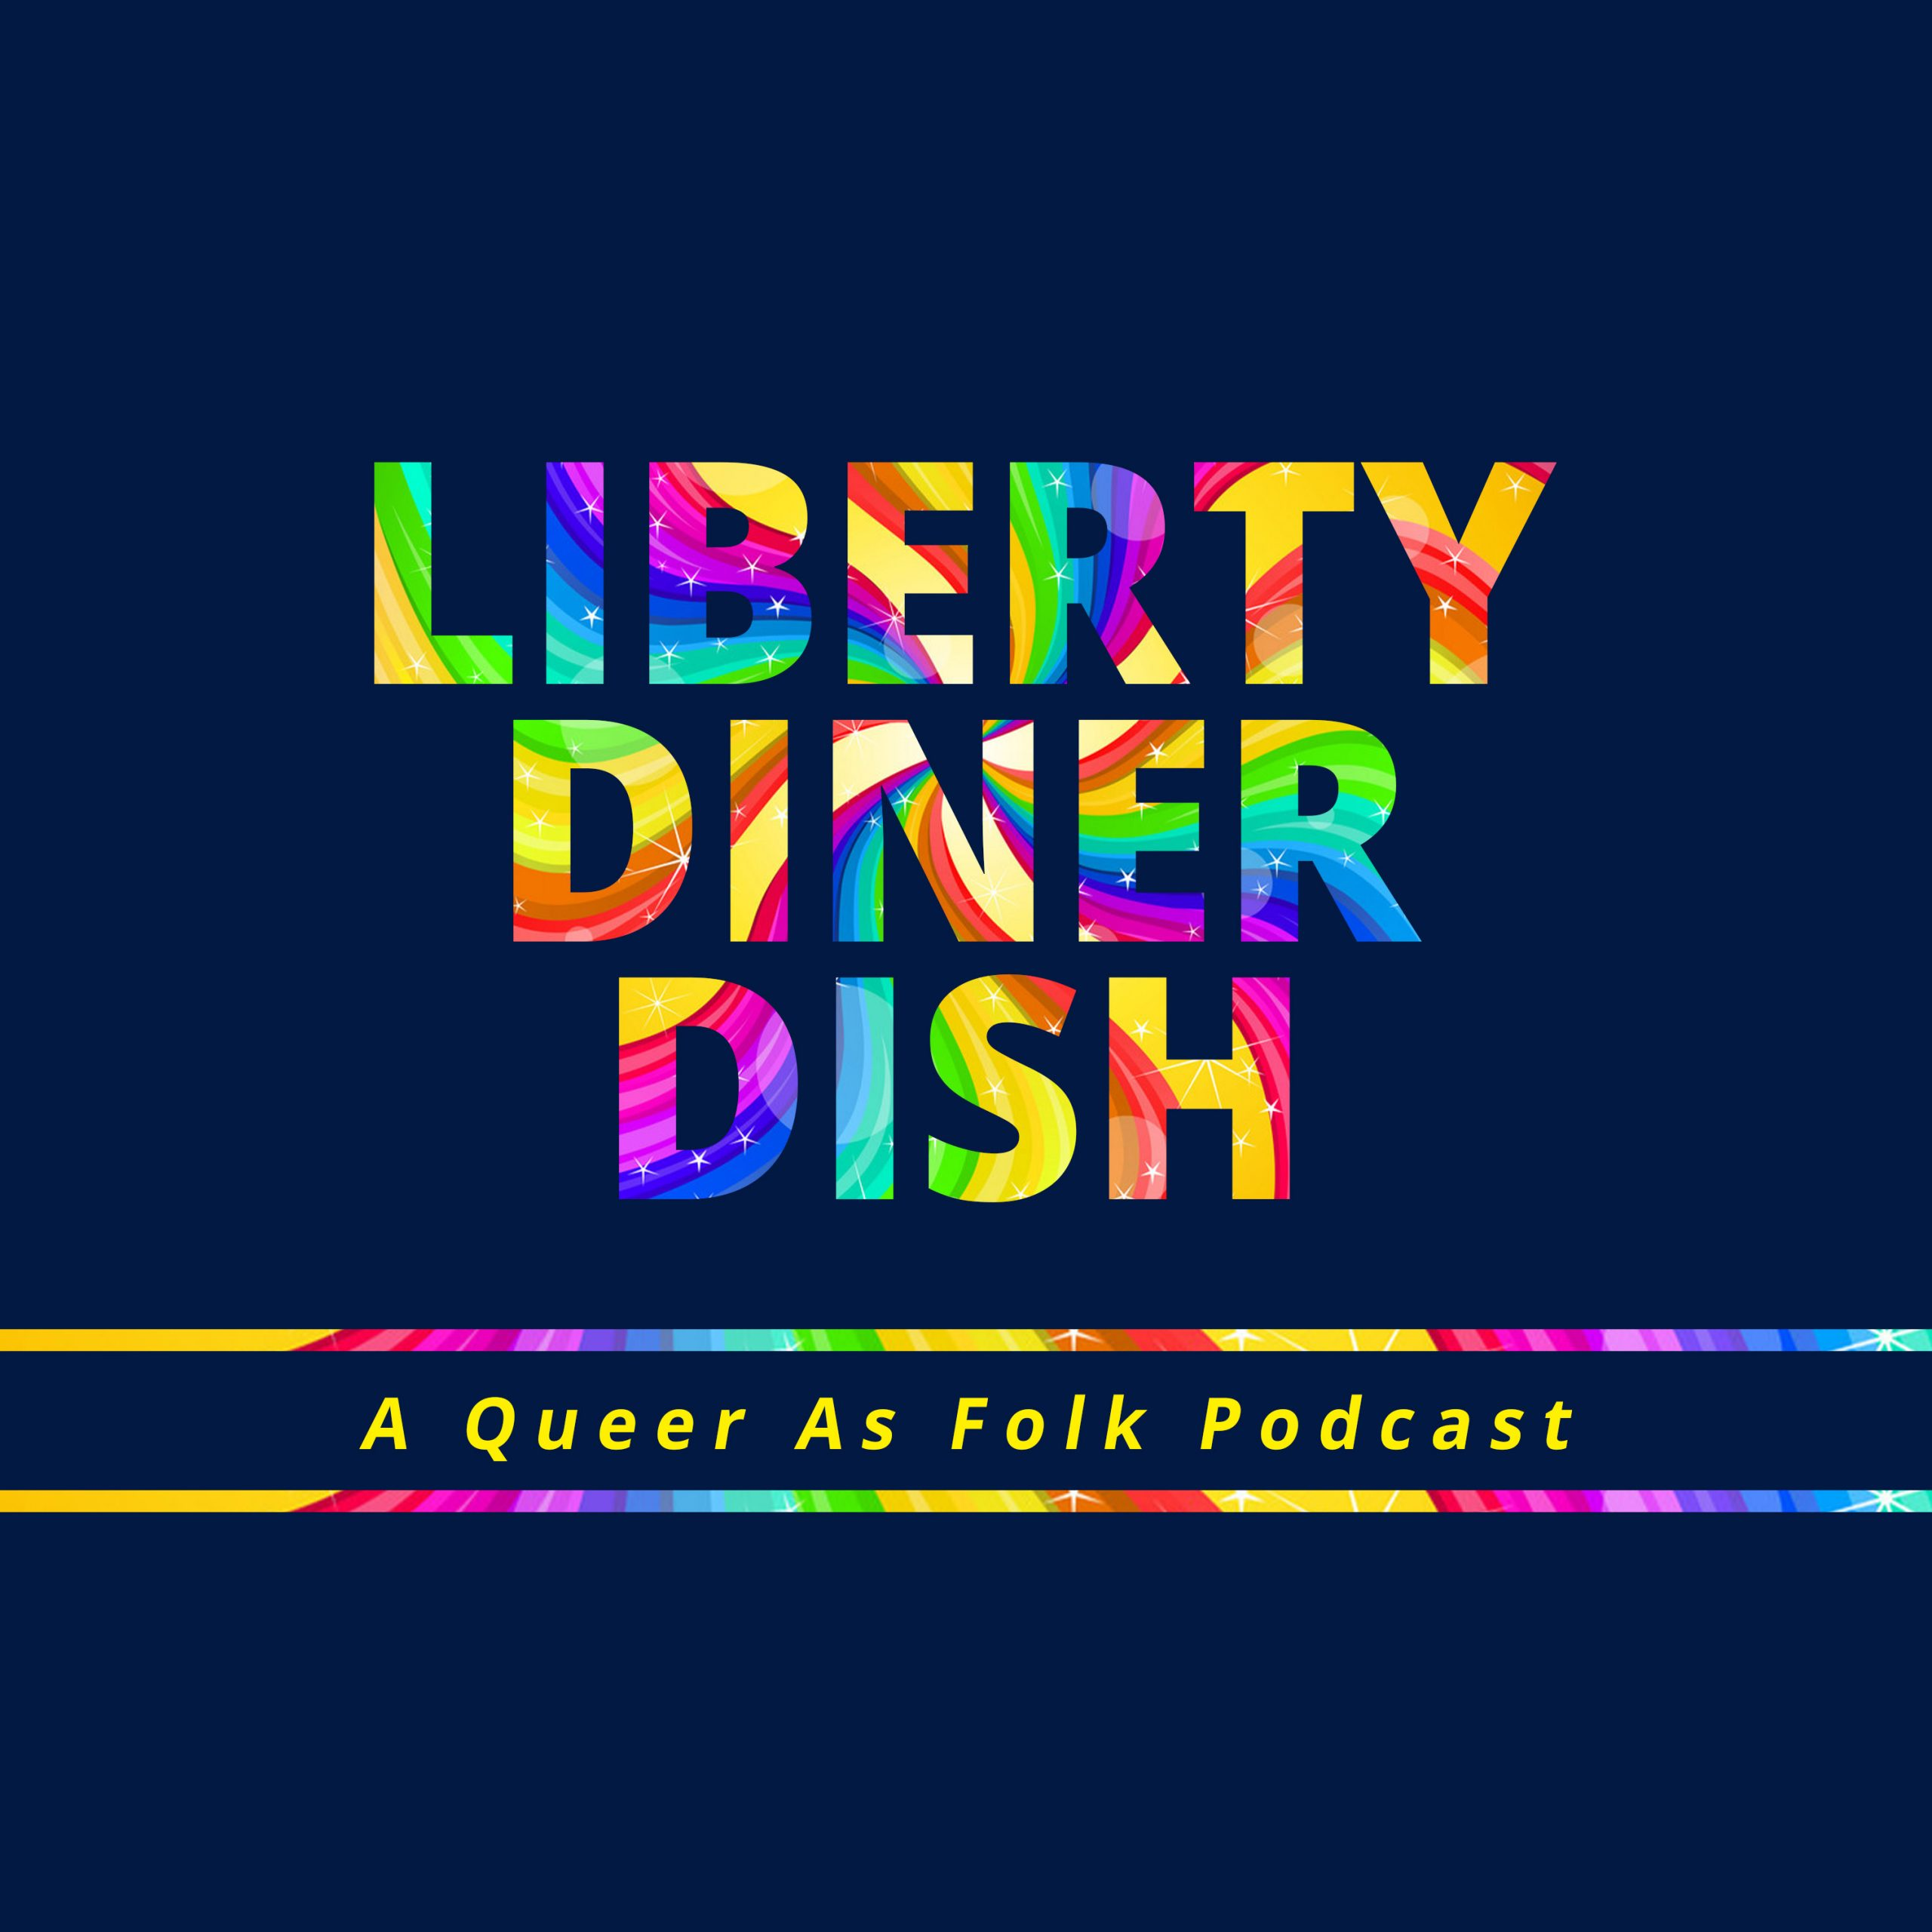 Welcome to Liberty Diner Dish